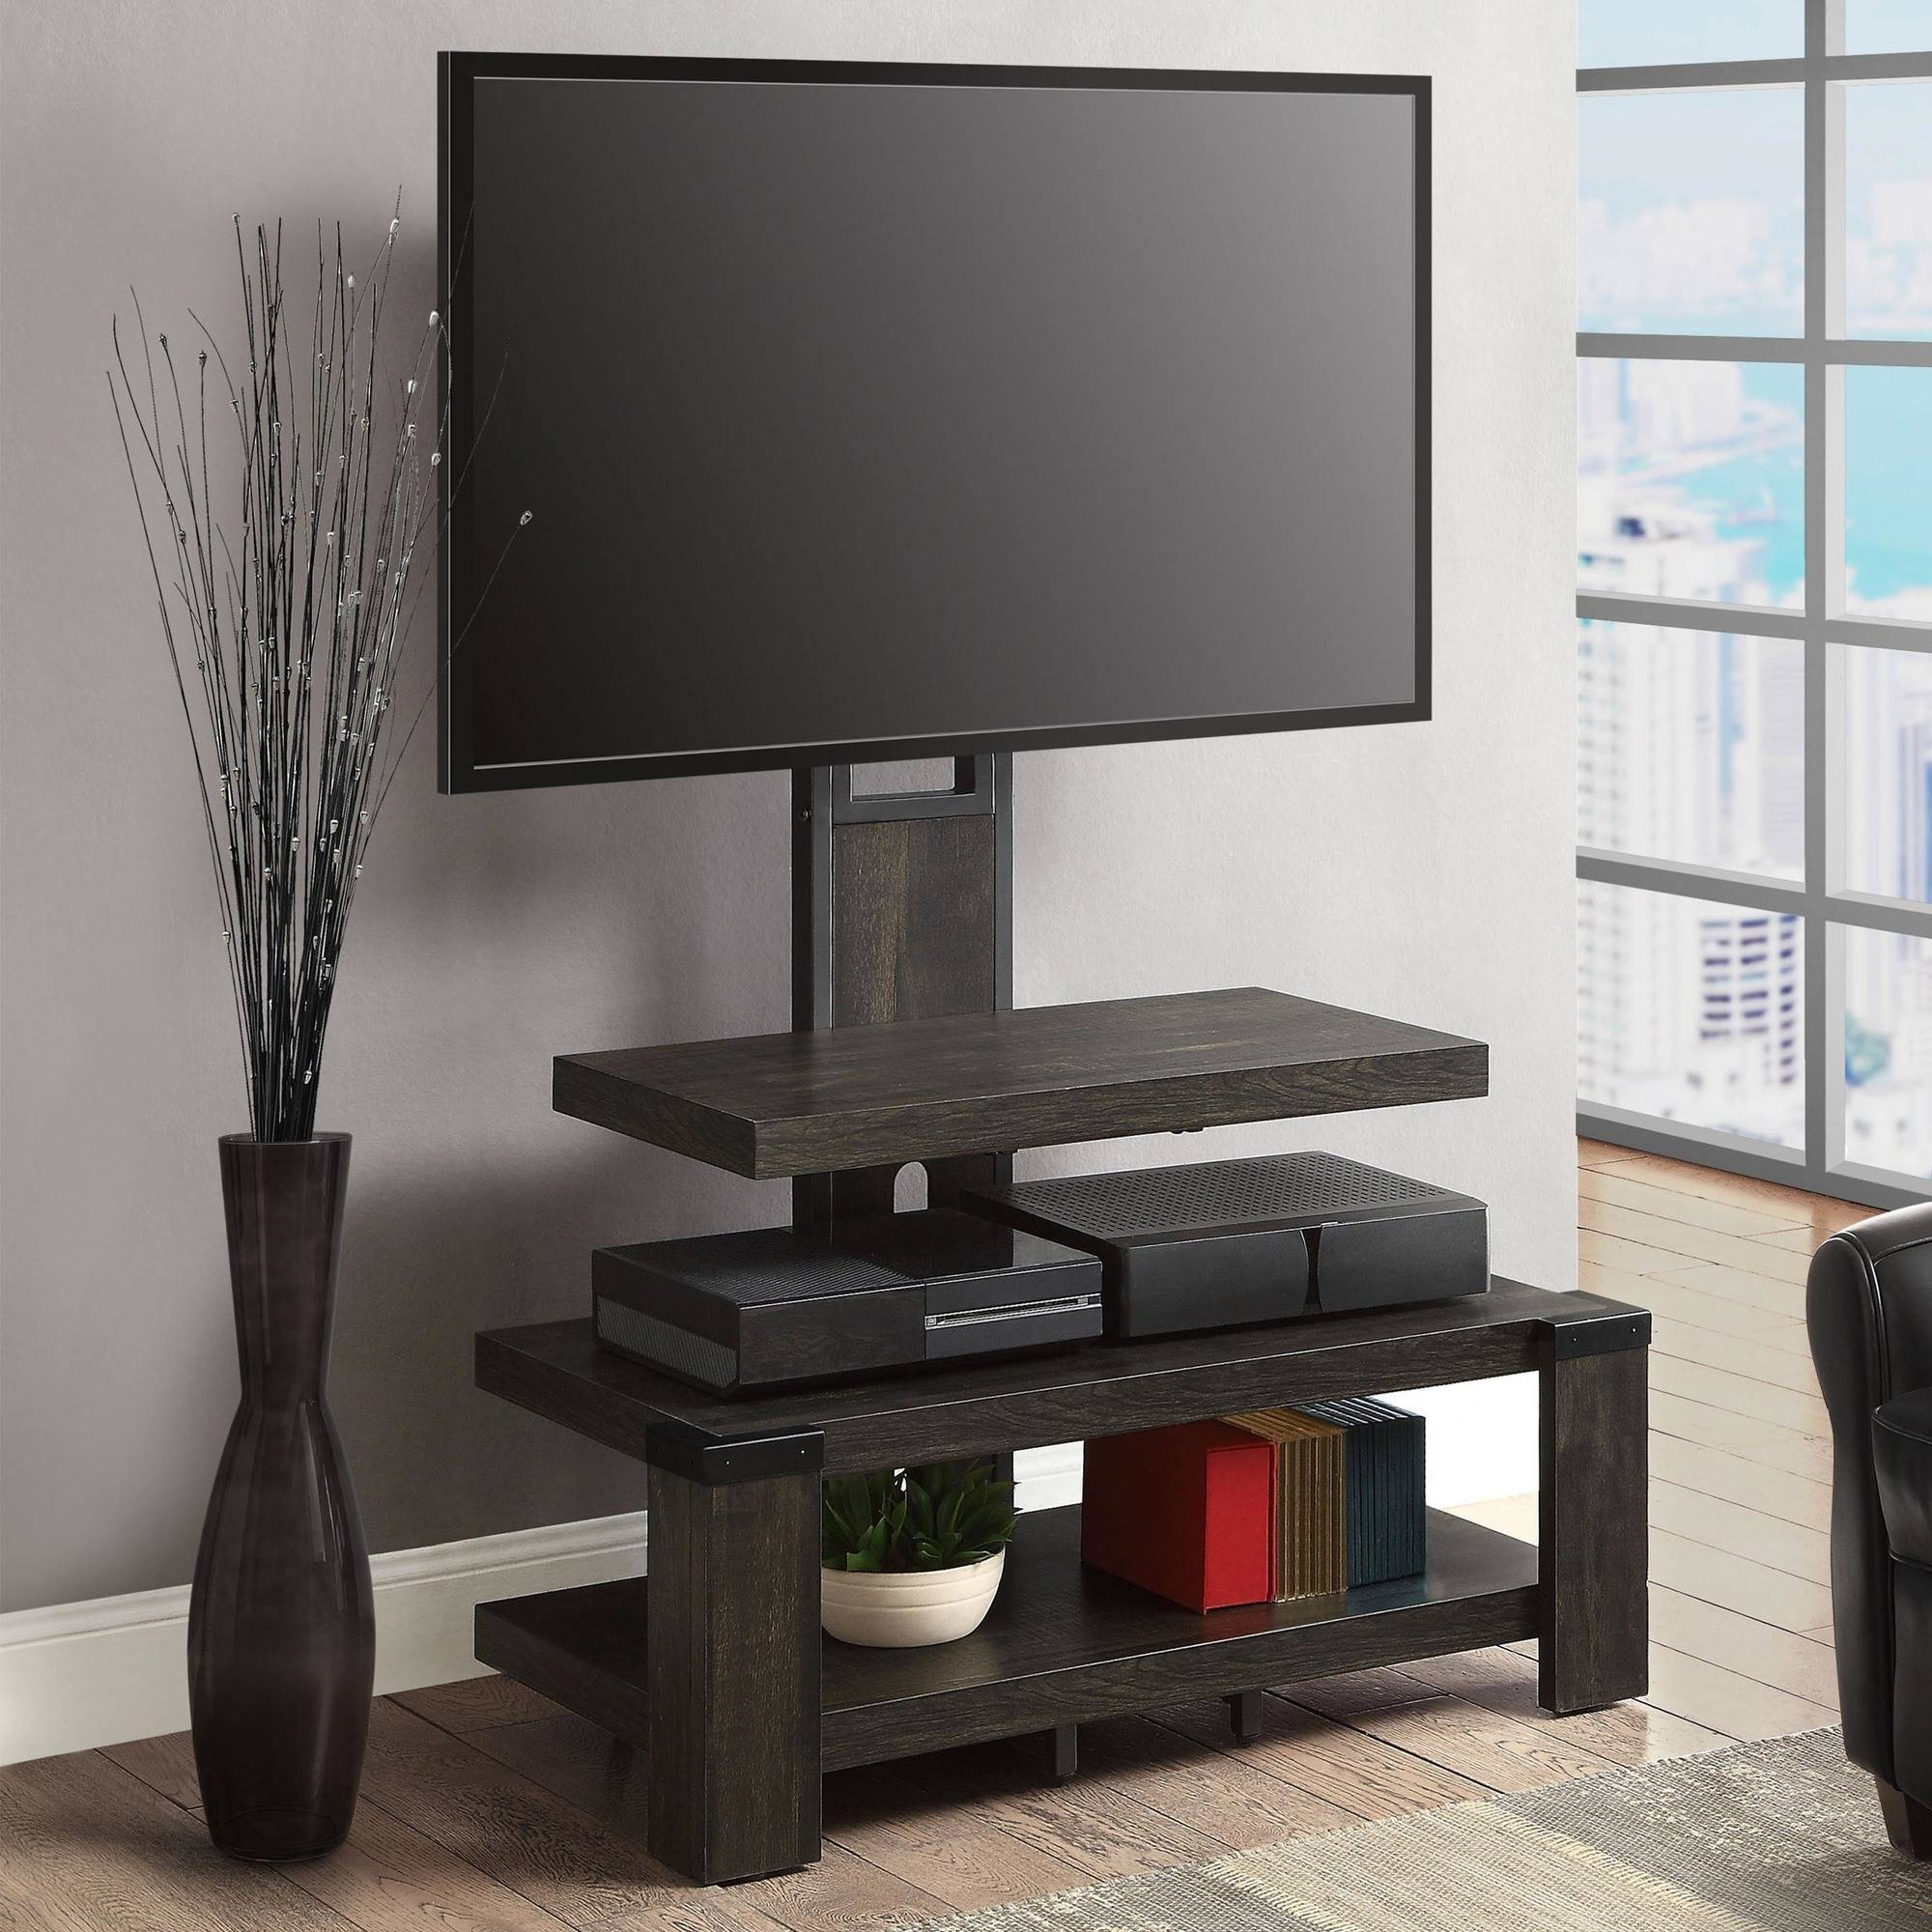 Wood Tv Entertainment Stands Inside Recent Wood Tv Stand With Mount Durable 3 Shelf Home Tv Entertainment Media (View 17 of 20)